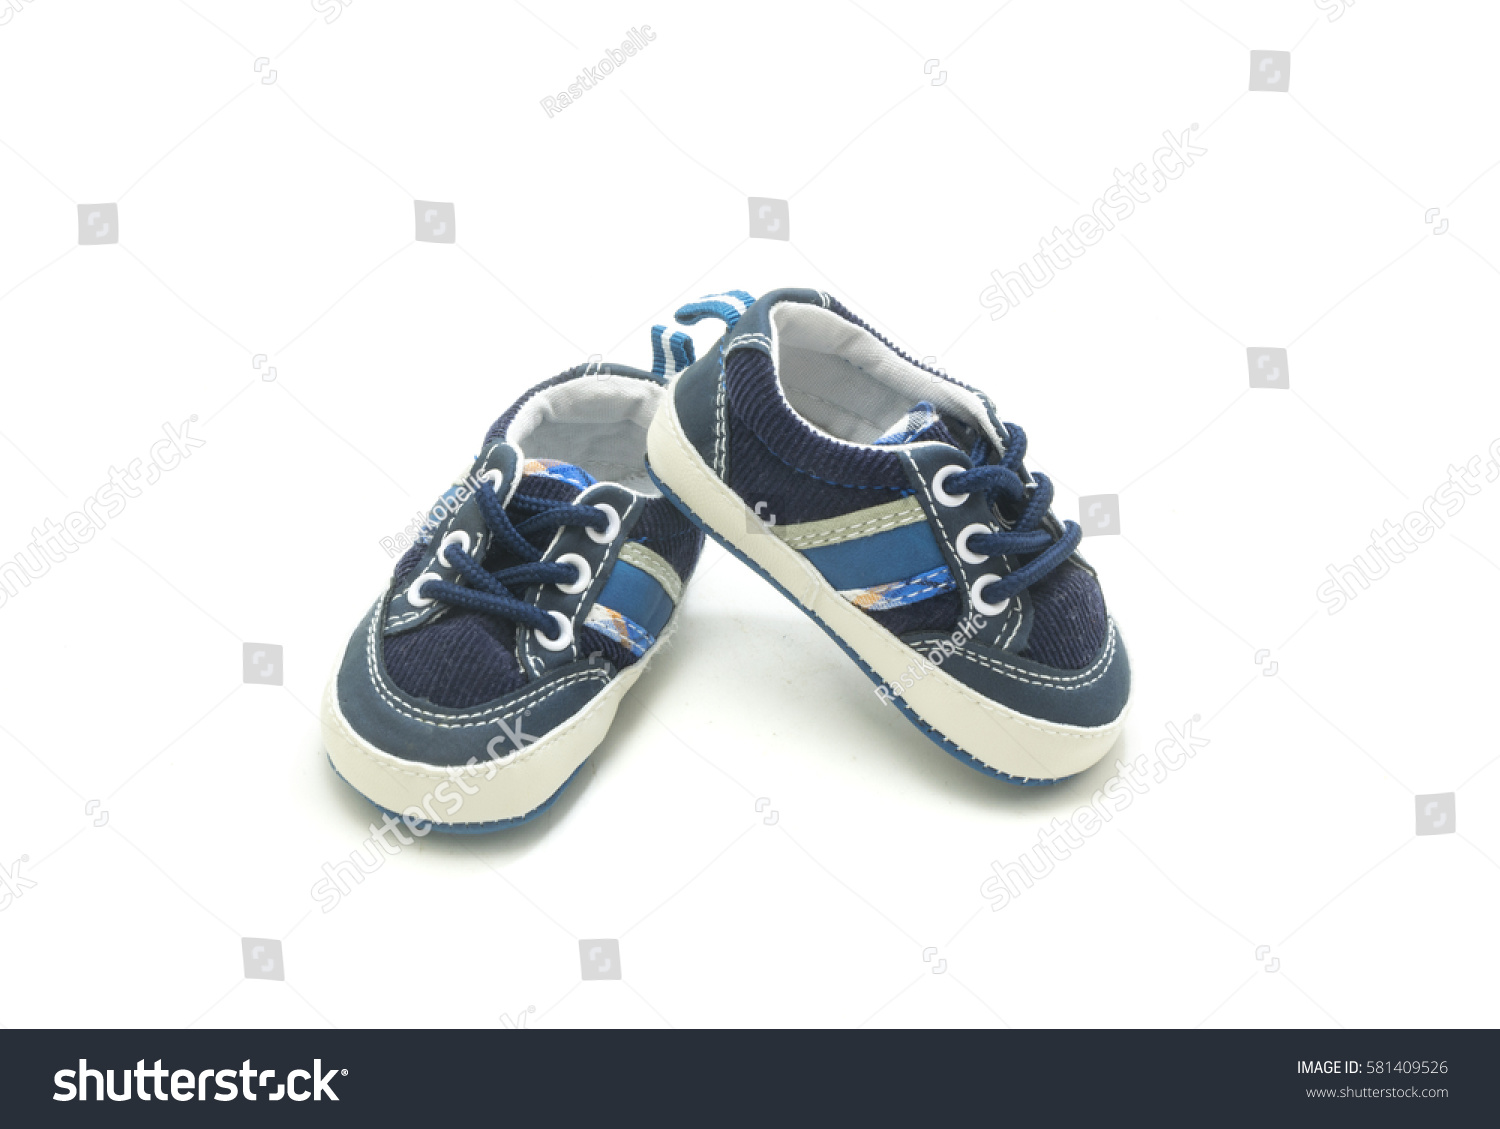 3248d6154 Blue Baby Shoes Isolated On White Stock Photo (Edit Now) 581409526 ...